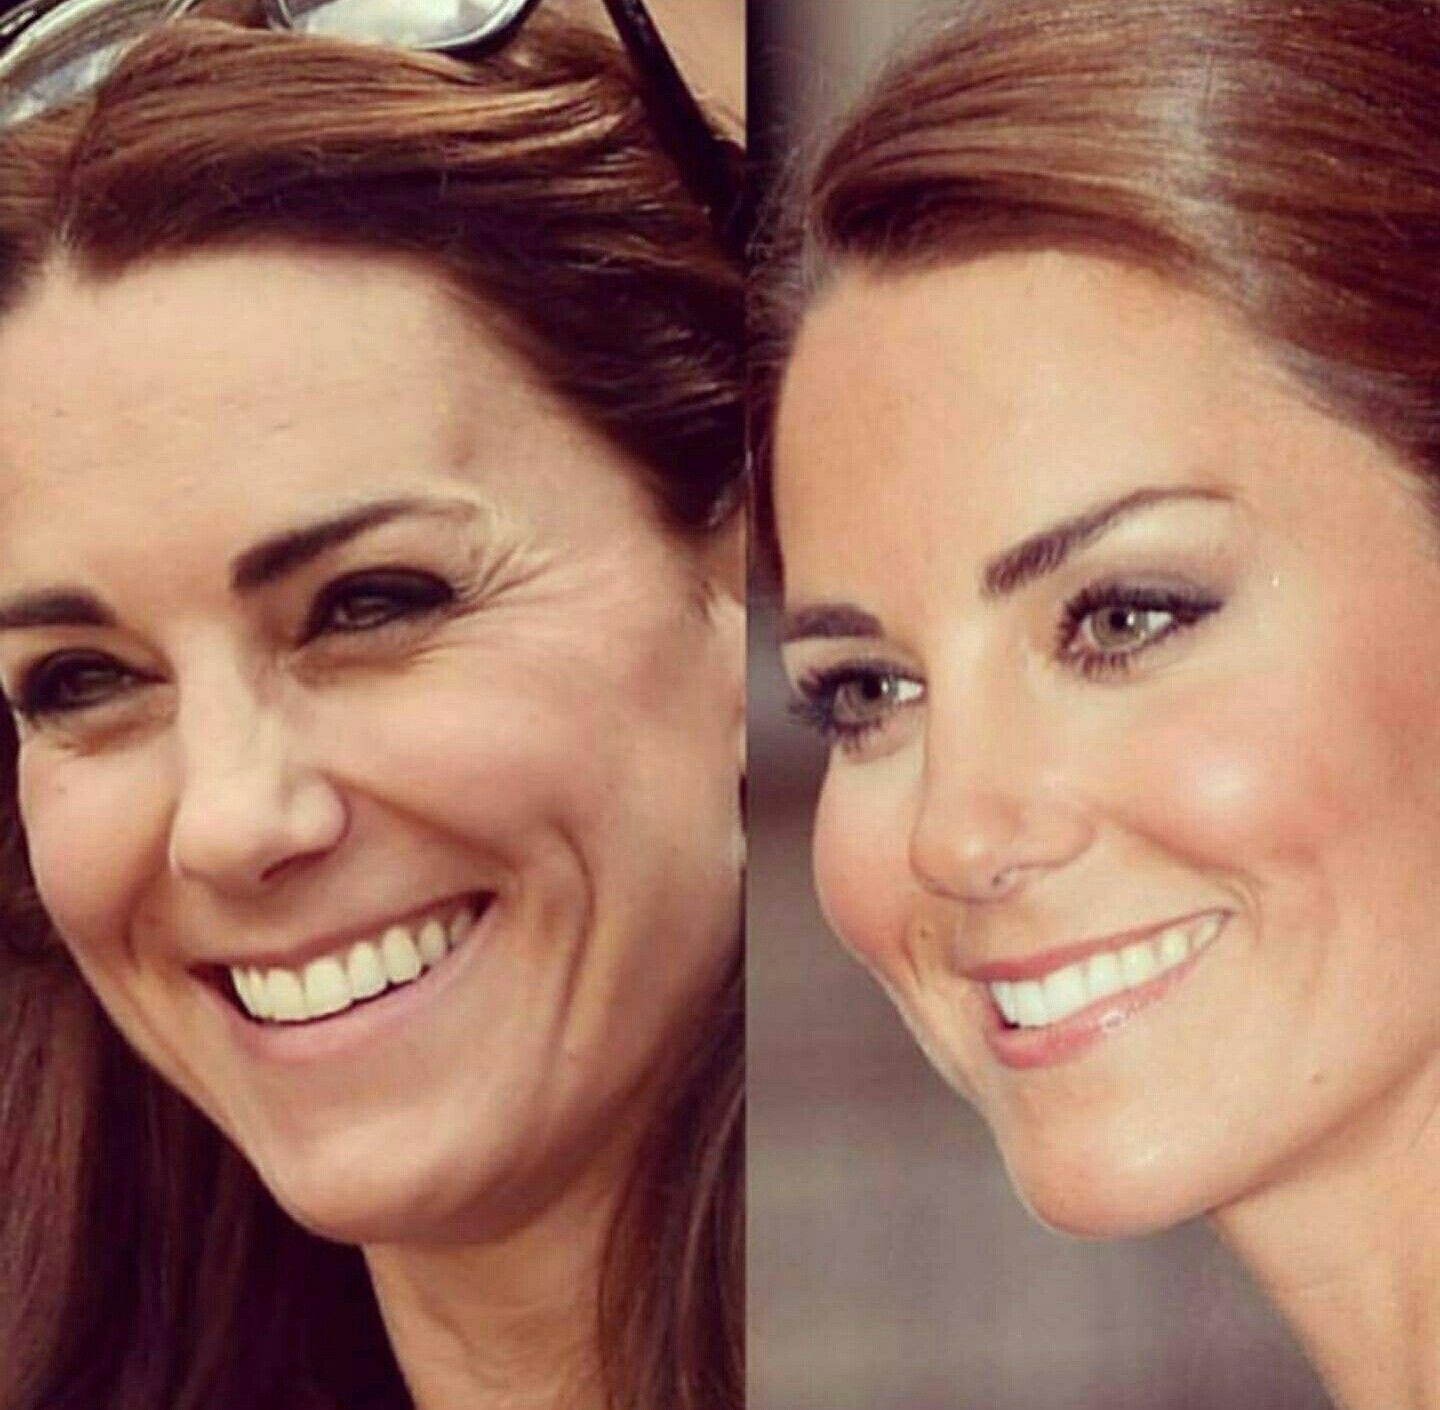 Kate hudsons double chin and swollen botox face